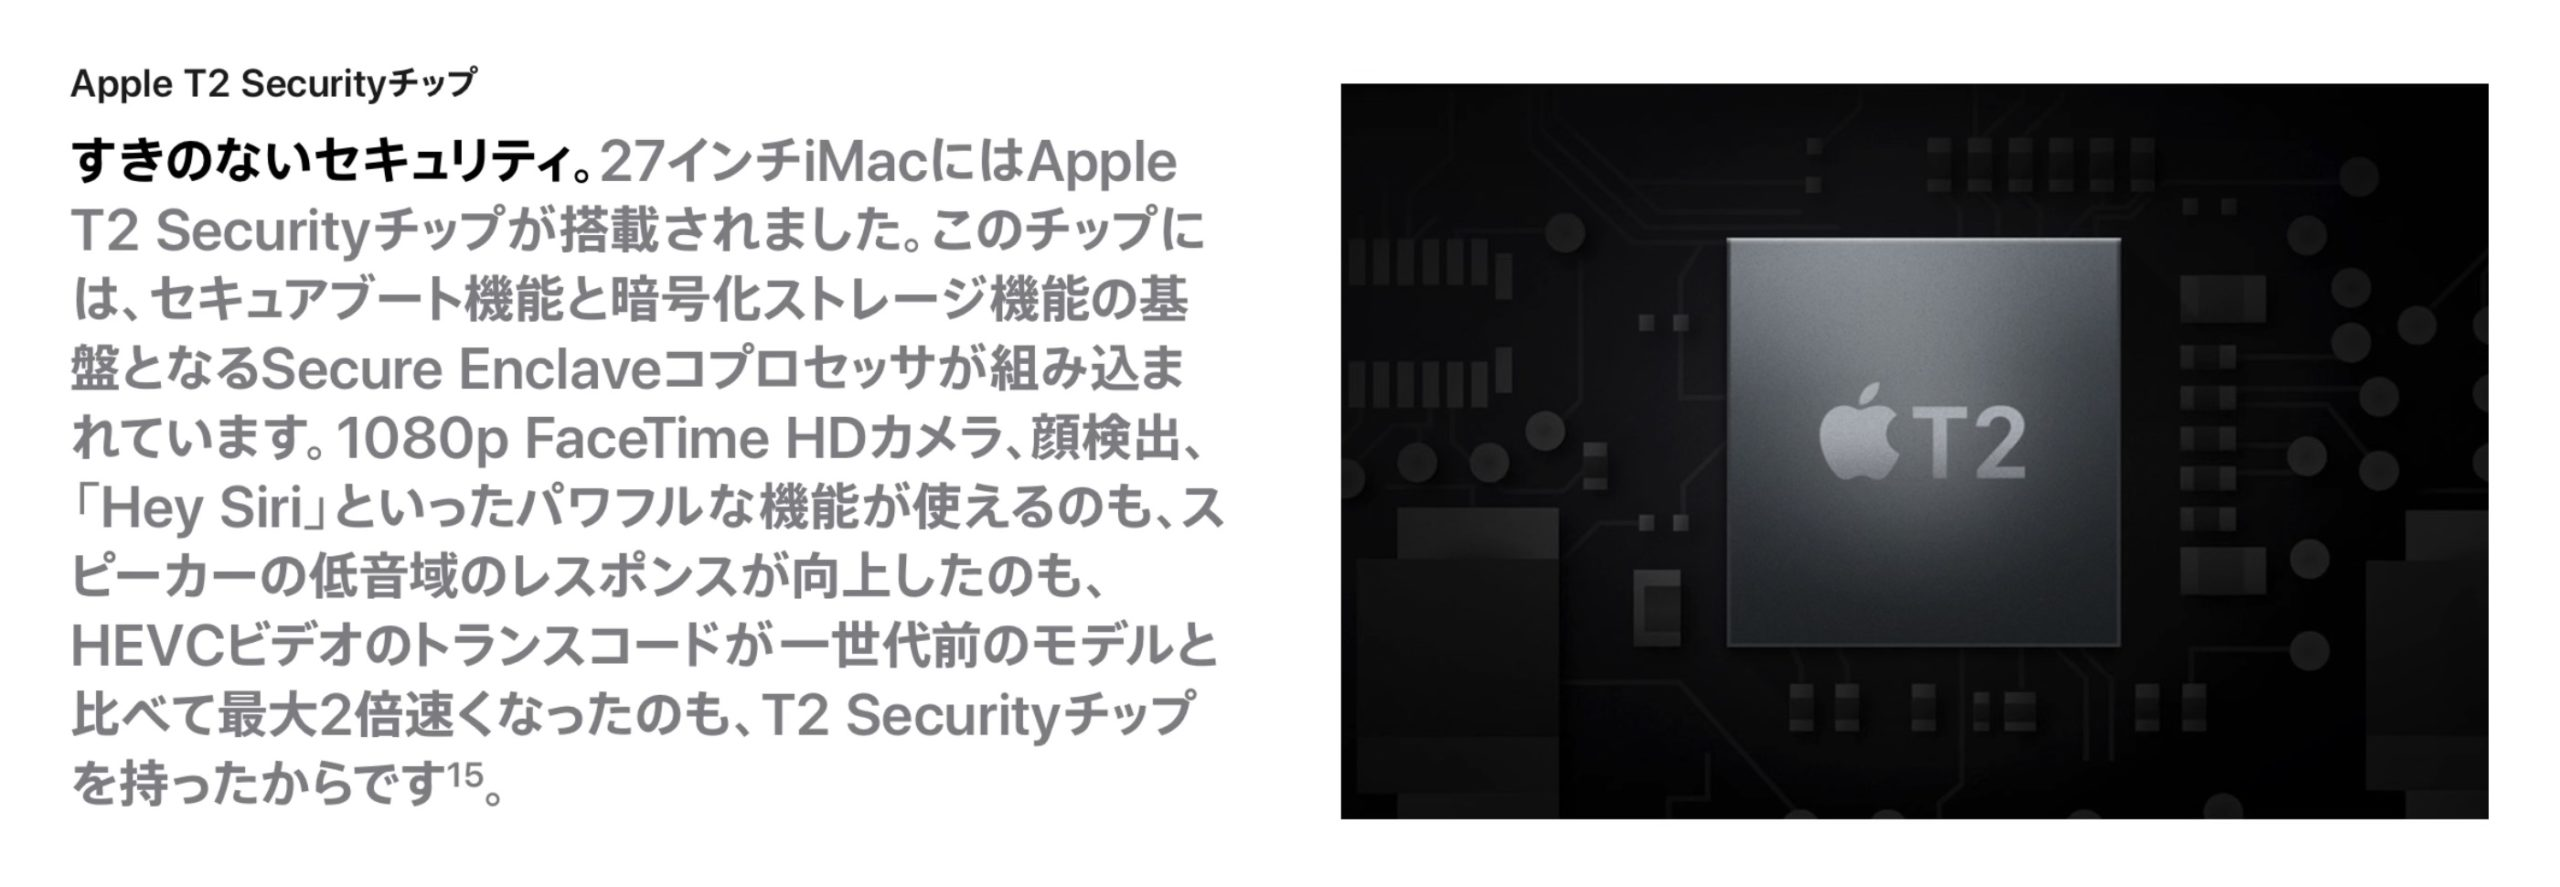 Apple T2 Securityチップ